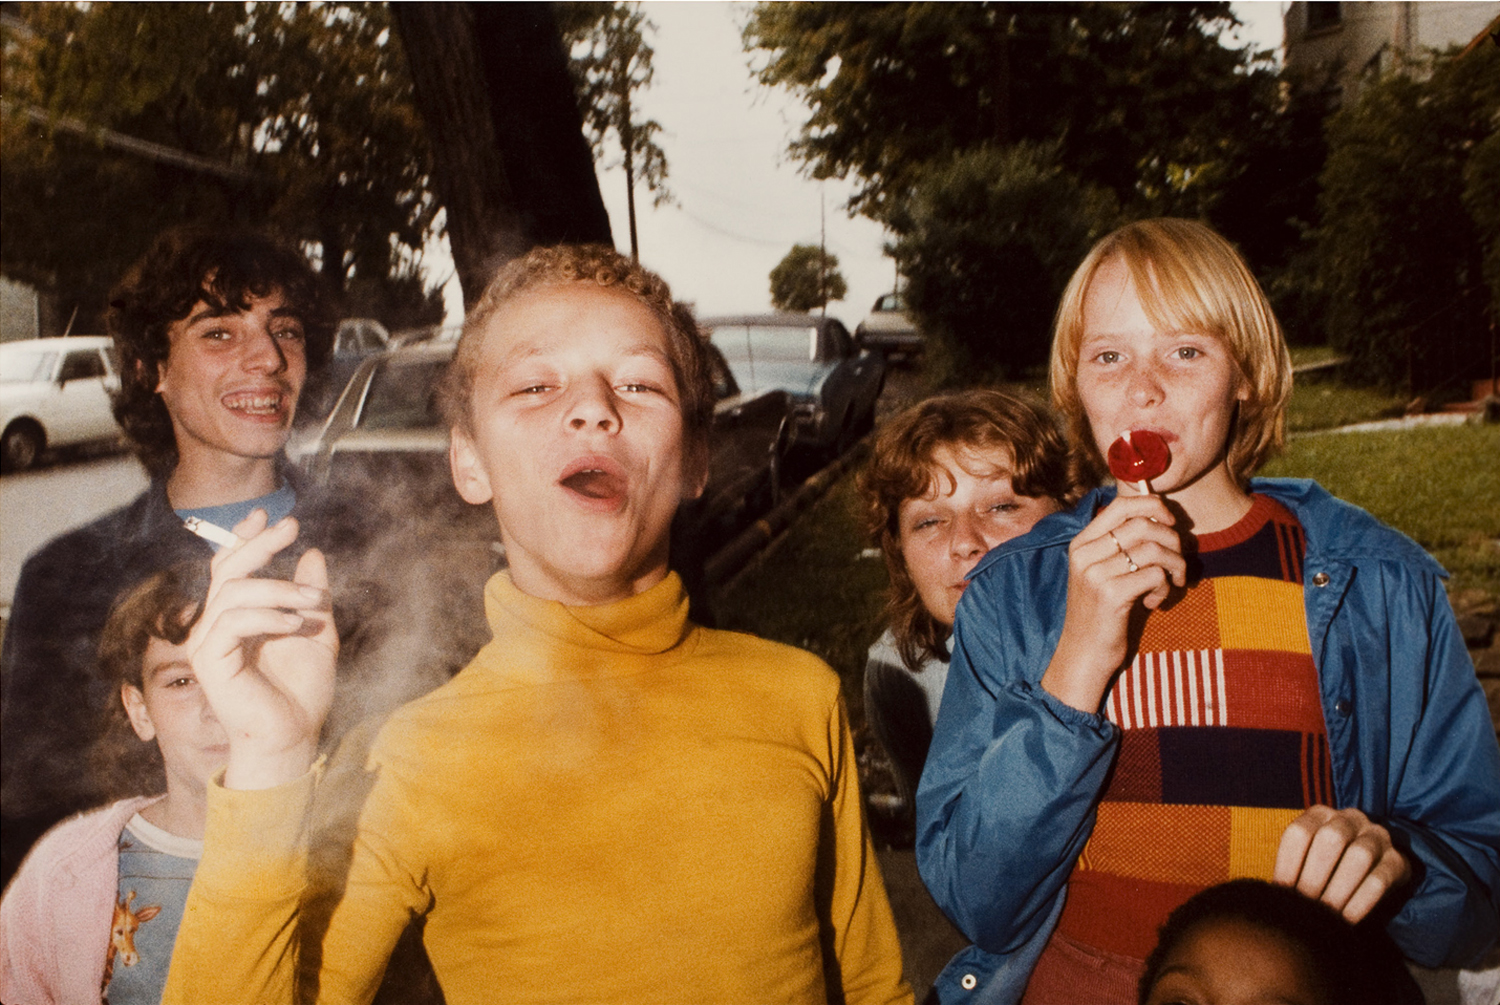 Exhibition.  Color! American Photography Transformed.  Amon Carter Museum of American Art, Fort Worth, Texas. October 5, 2013 - January 5, 2014. Pictured: Boy in Yellow Shirt Smoking, 1977.